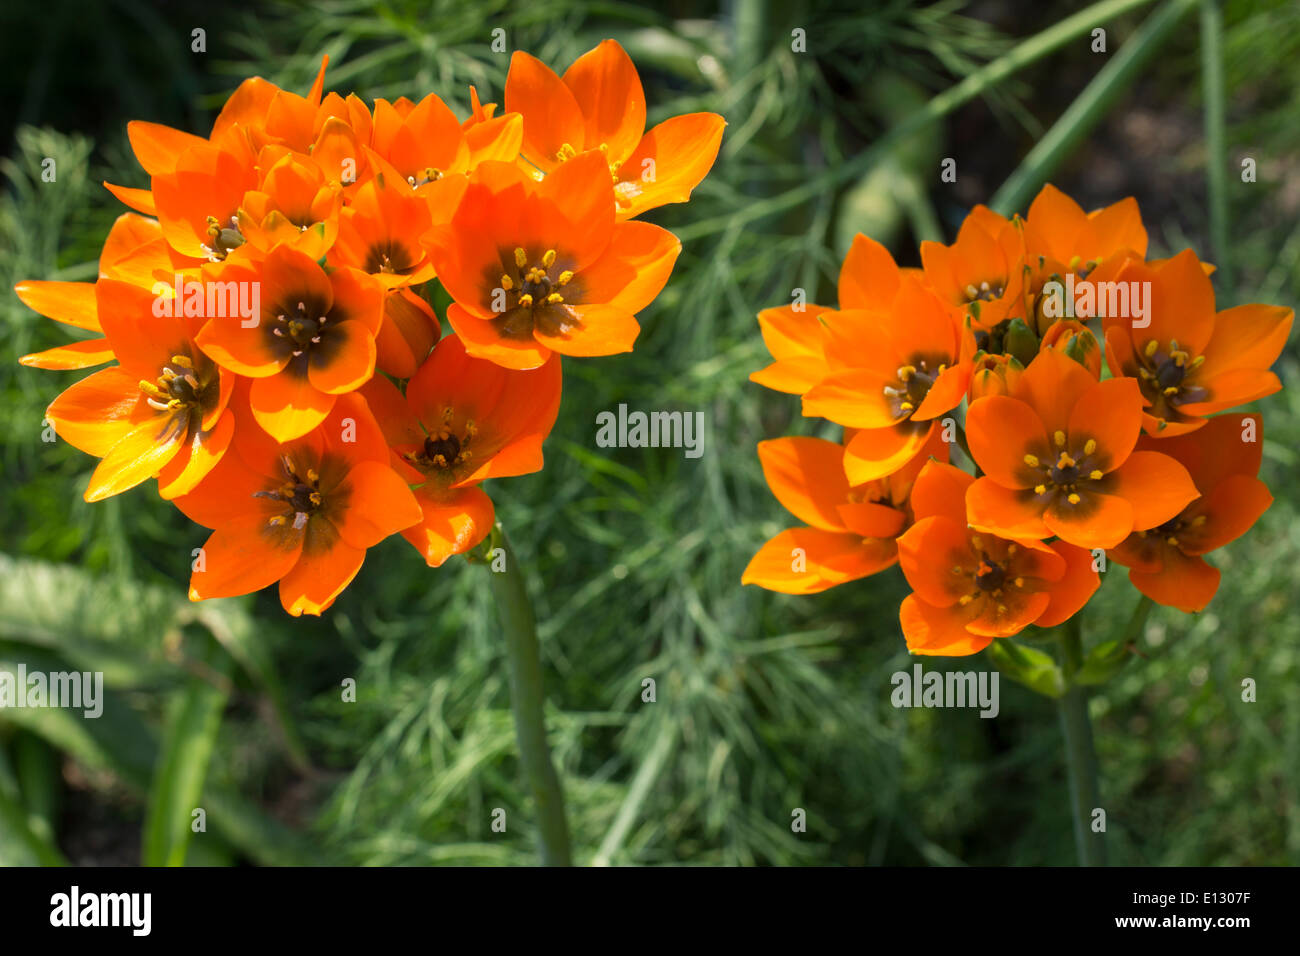 Bright orange flowers of the tender South African bulb, Ornithogalum dubium - Stock Image